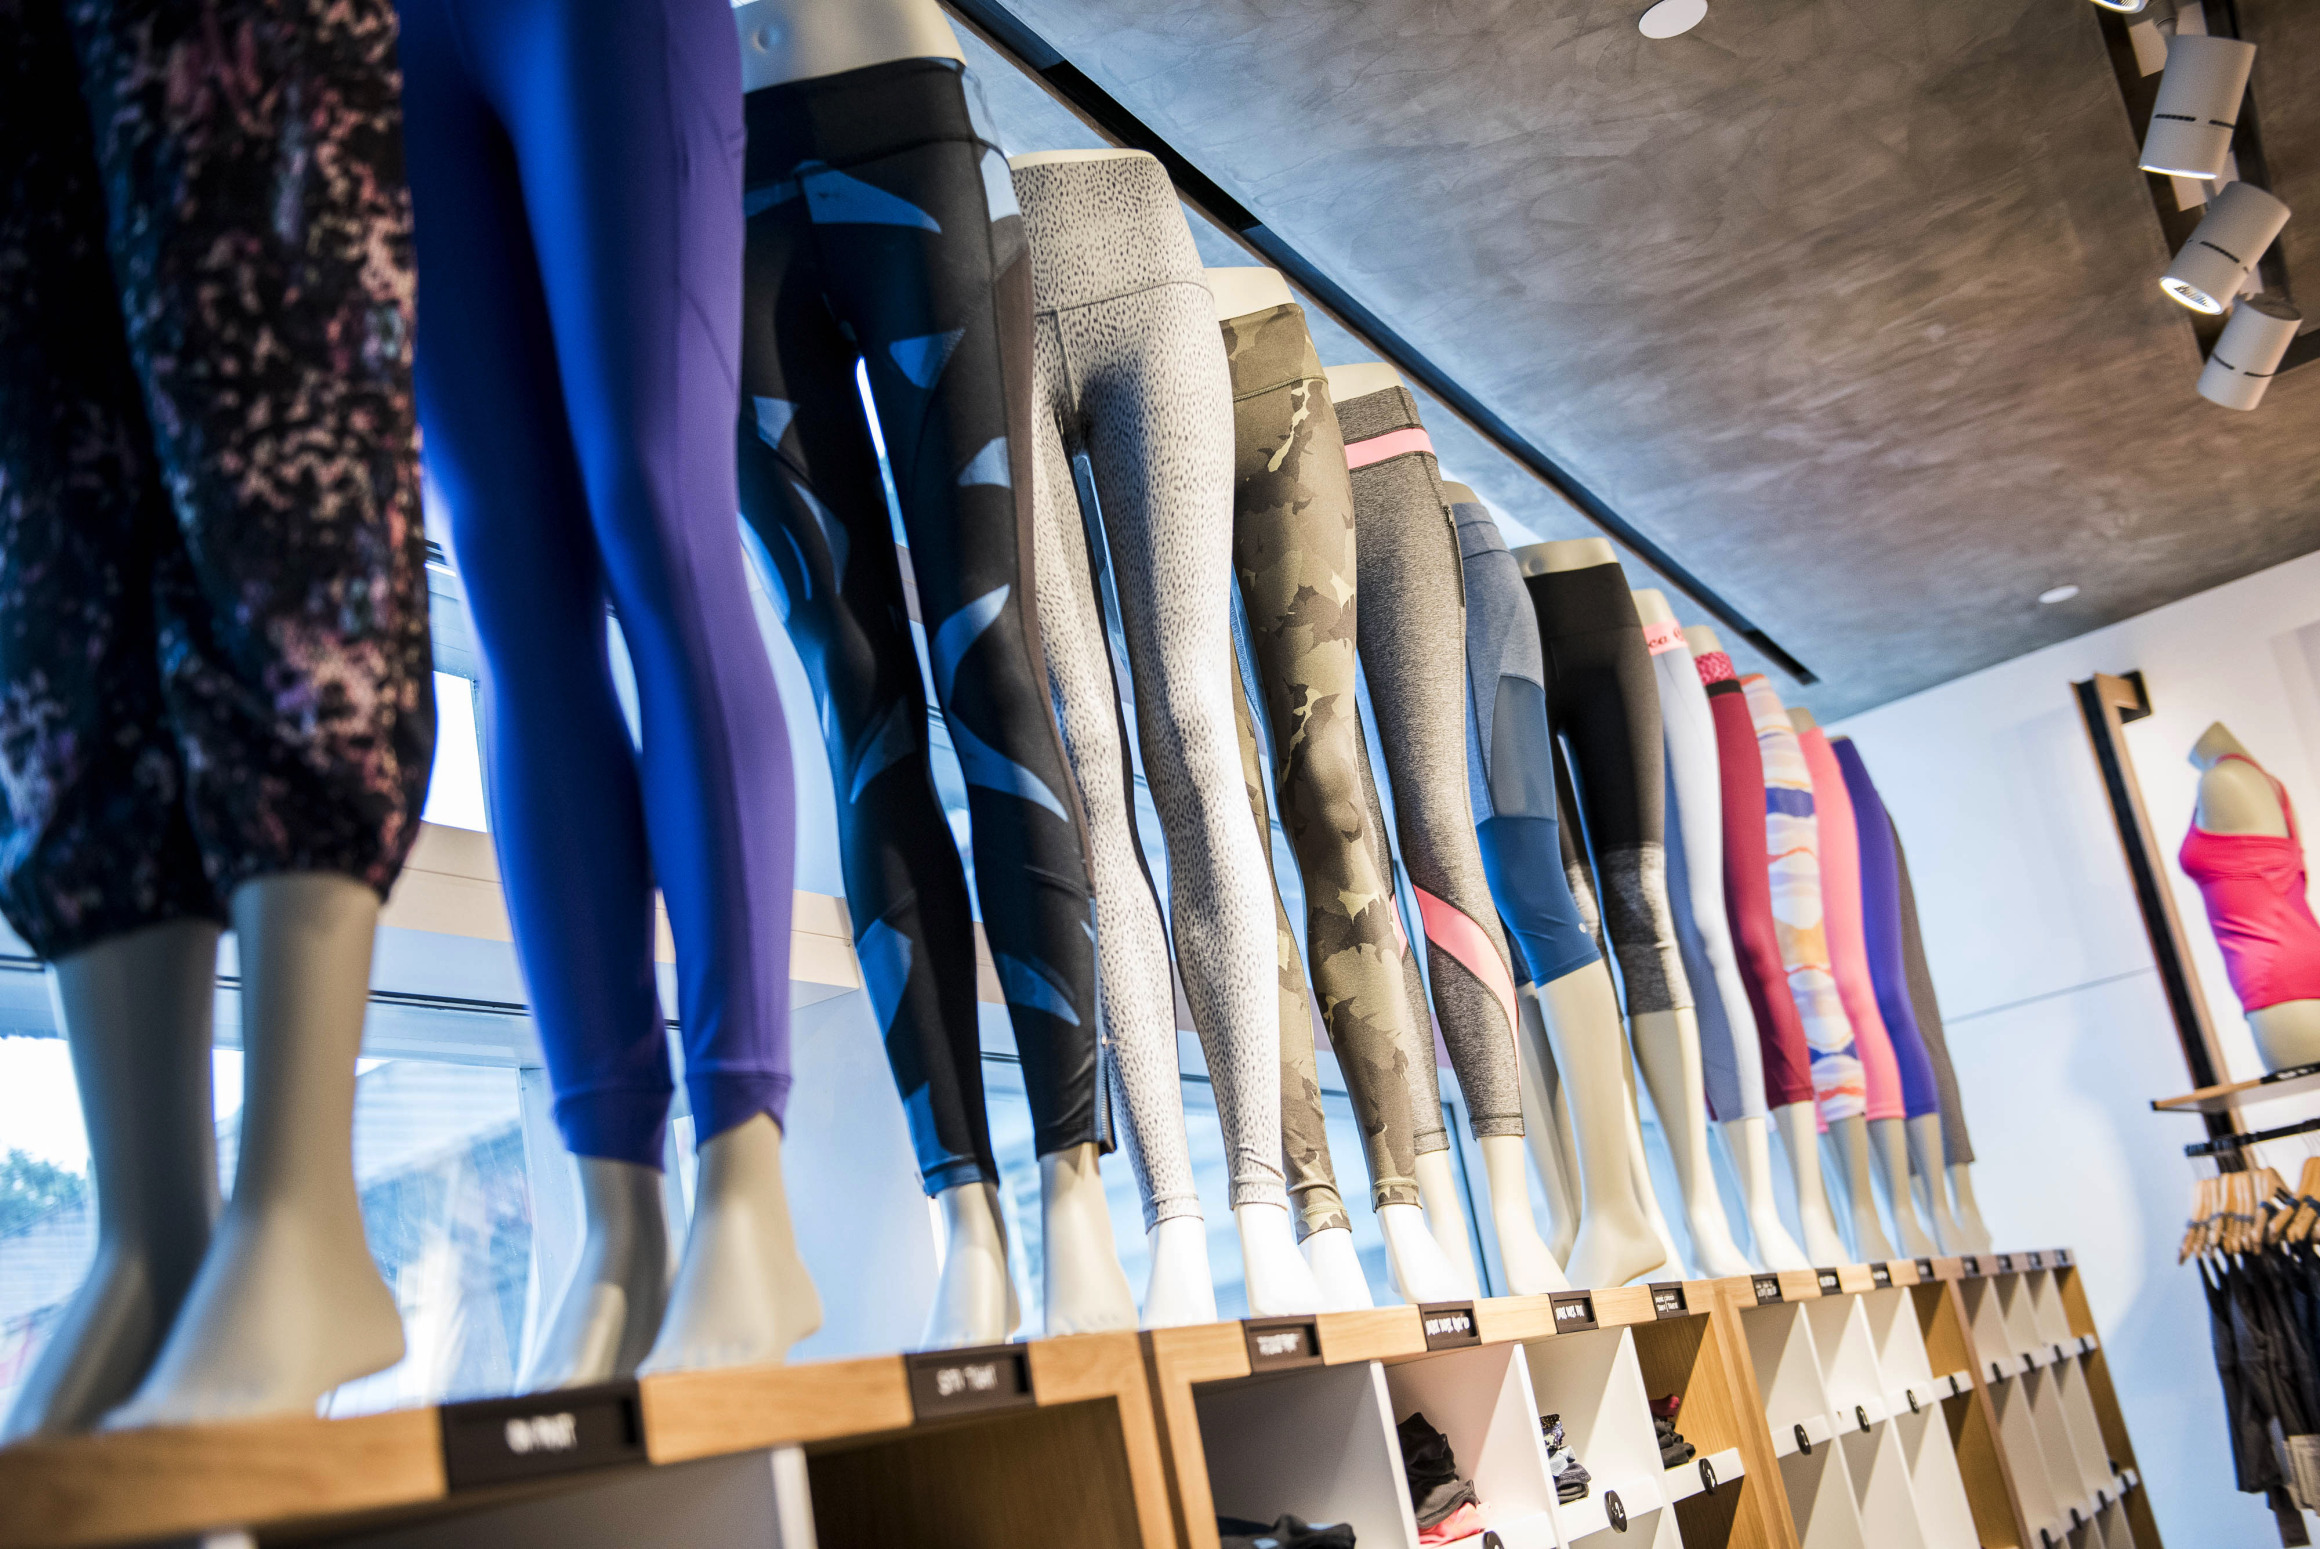 Athletic apparel sits on display inside a Lululemon Athletica Inc. store at International Finance Centre mall in Hong Kong, China, on Monday, June 22, 2015. Lululemon Athletica opened their first retail store in Hong Kong on June 19. Photographer: Xaume Olleros/Bloomberg